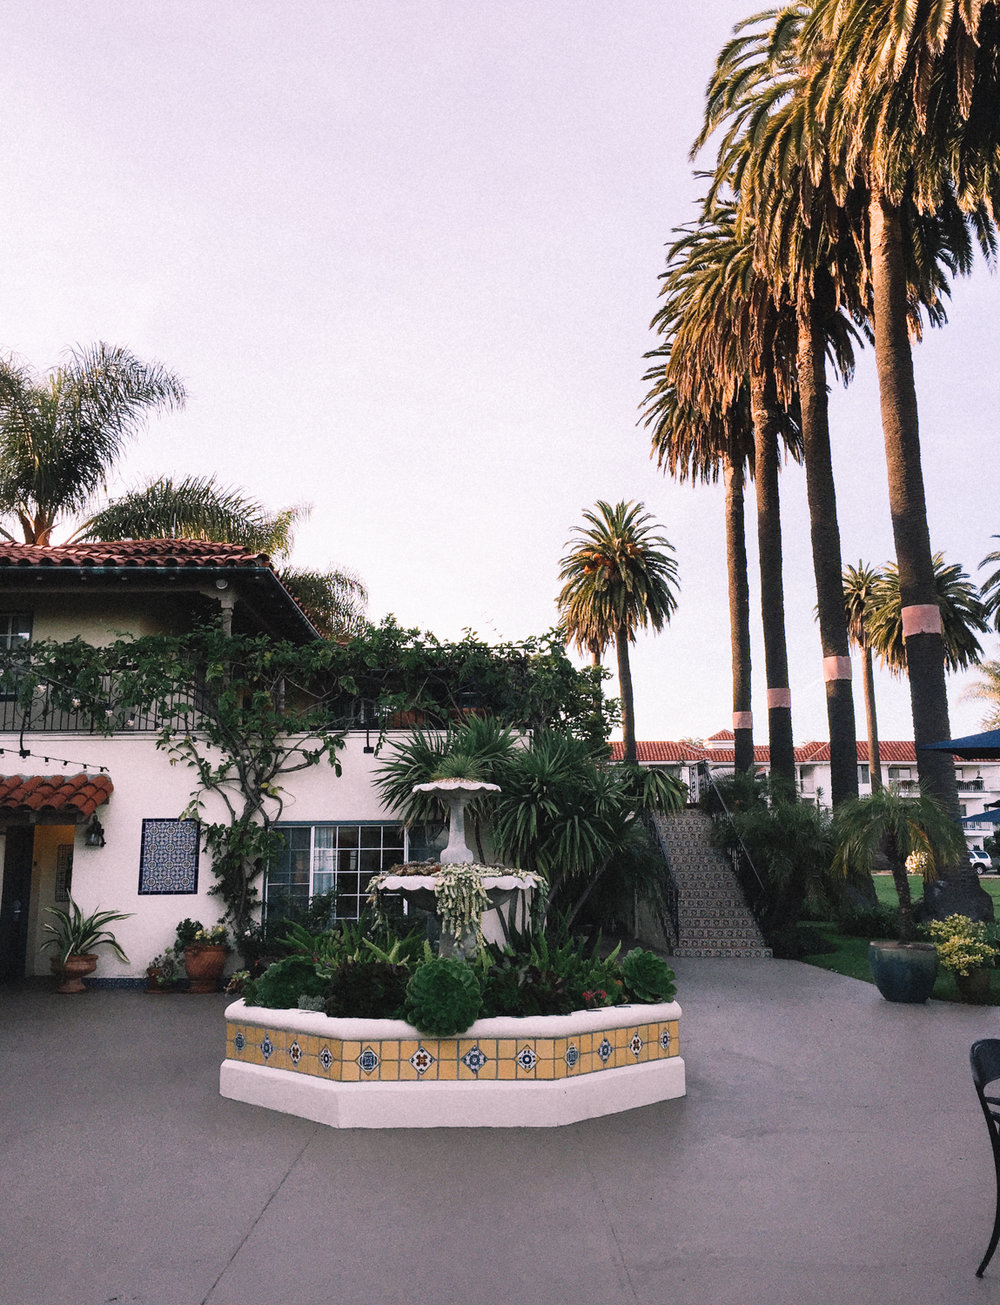 24 hours in Santa Barbara | A Fabulous Fete